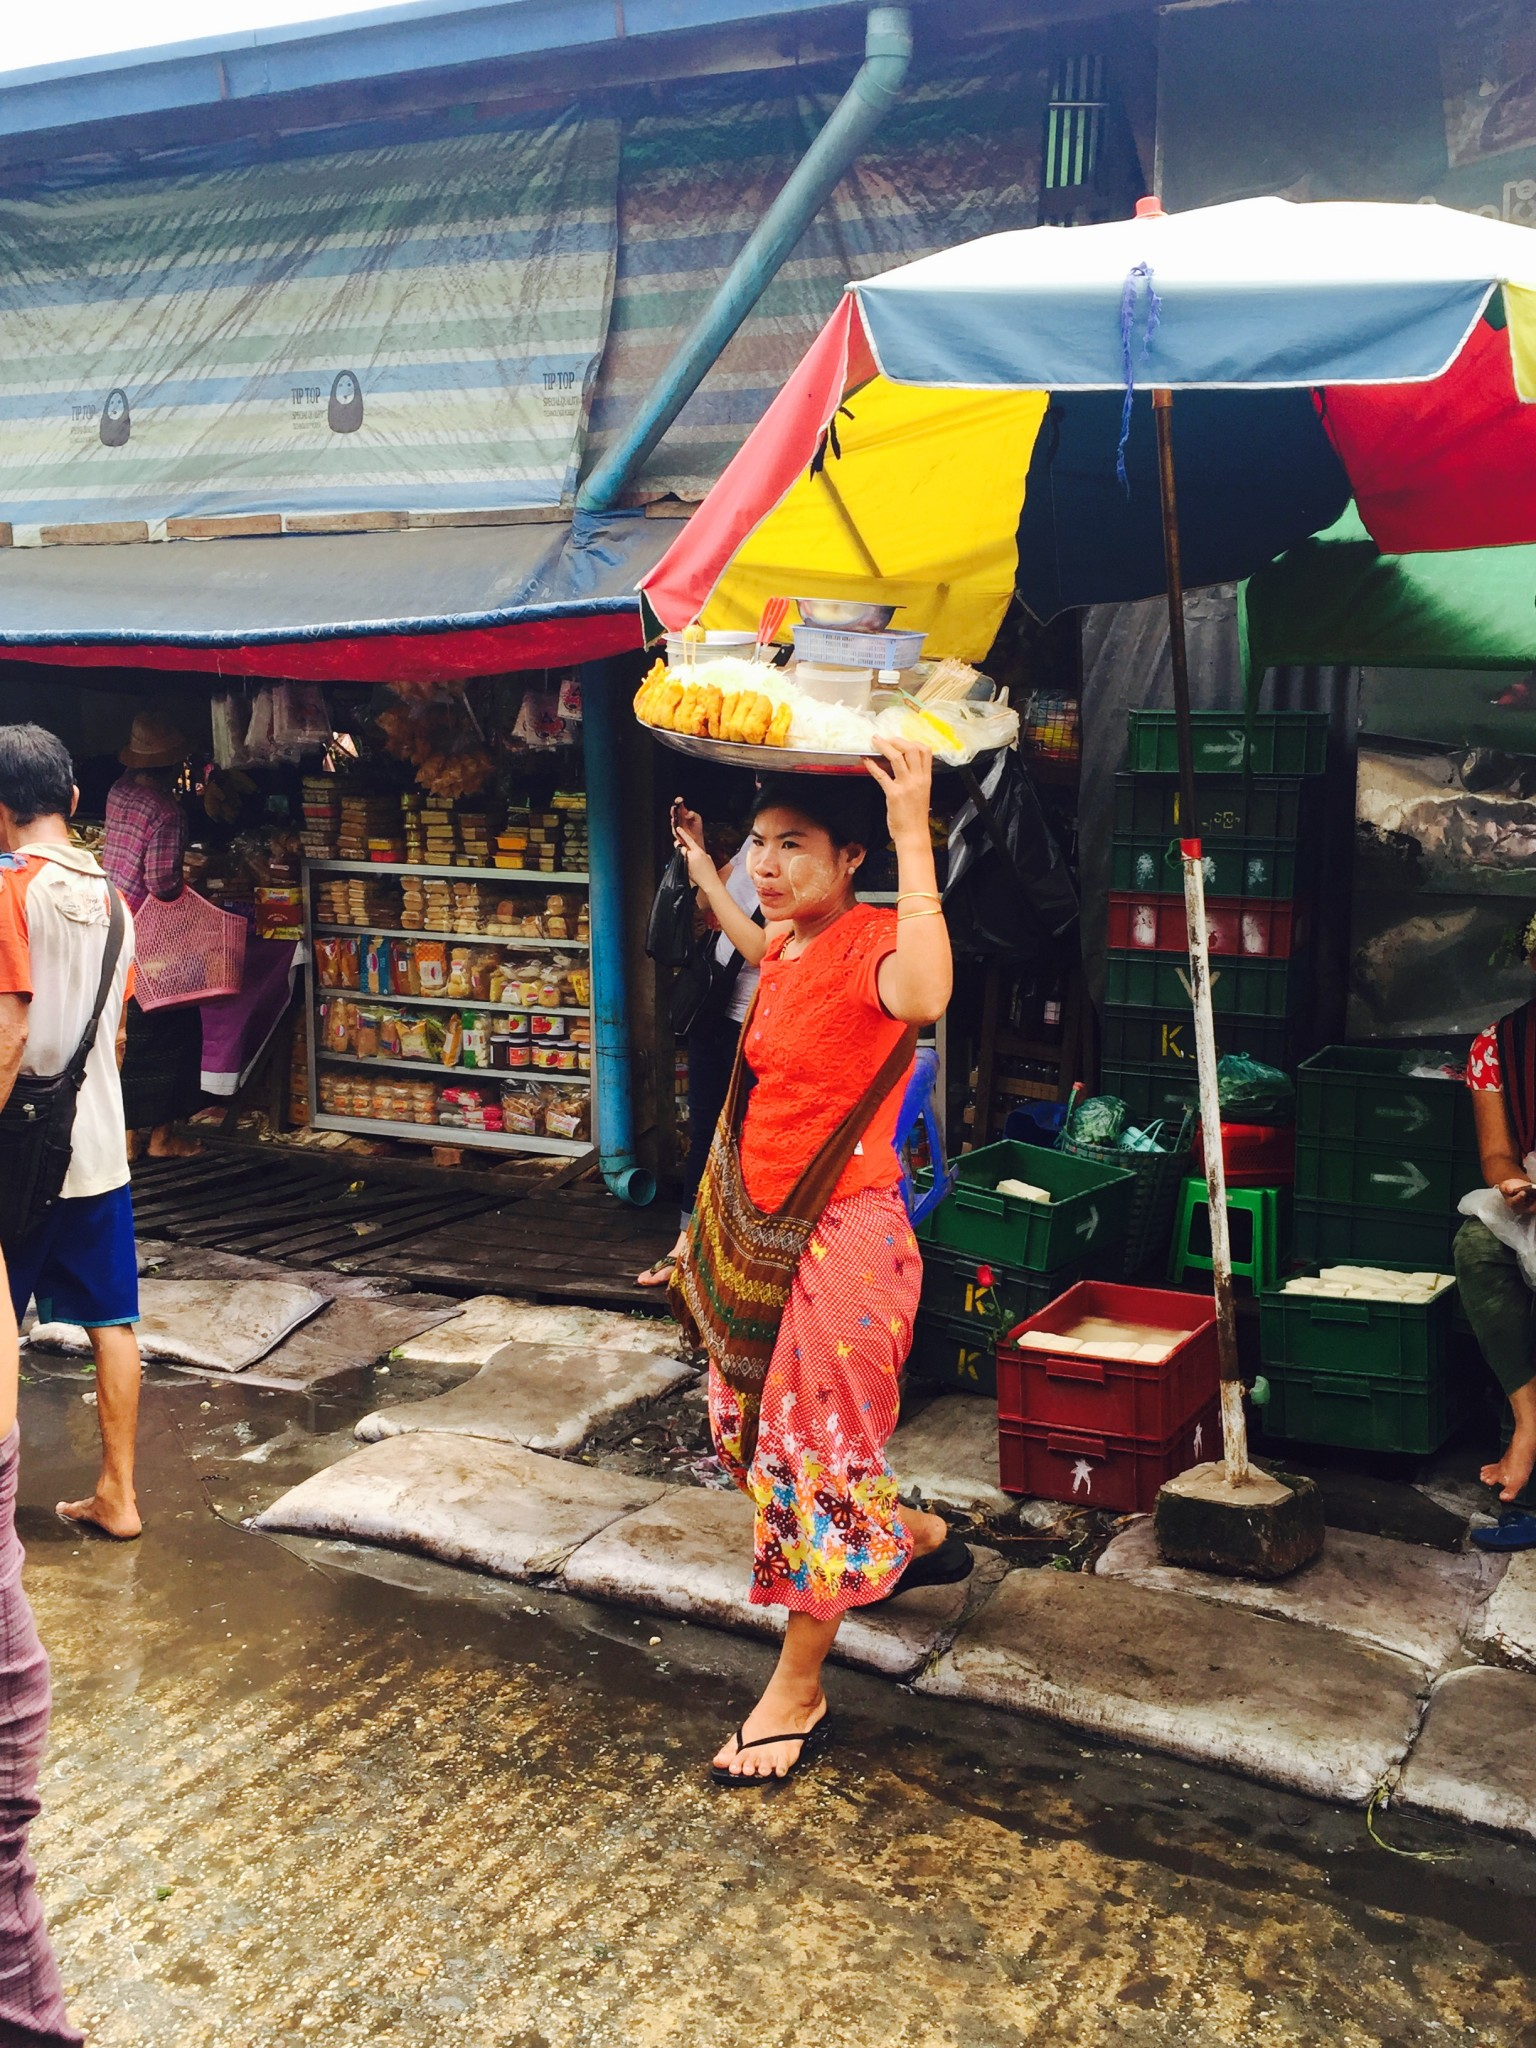 Locals carrying food on head